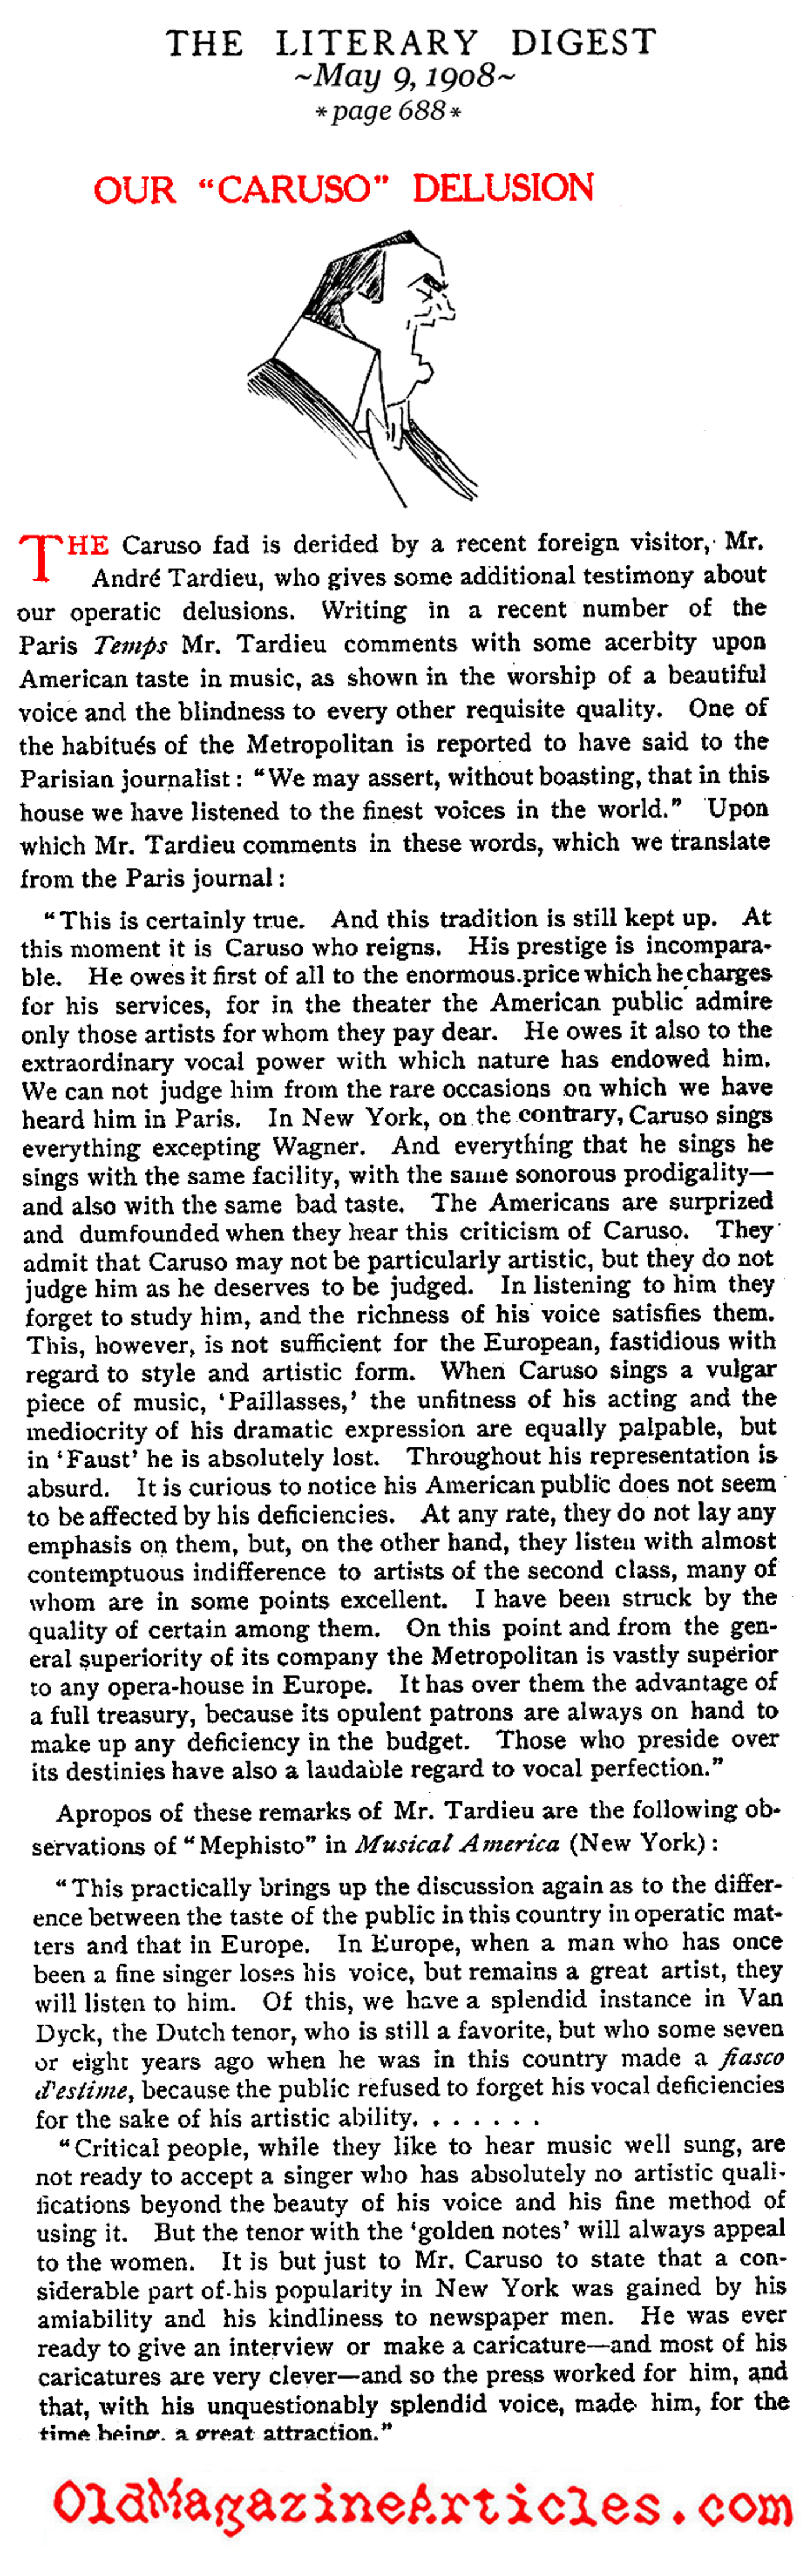 A Bad Review for Enrico Caruso  (The Literary Digest, 1908)